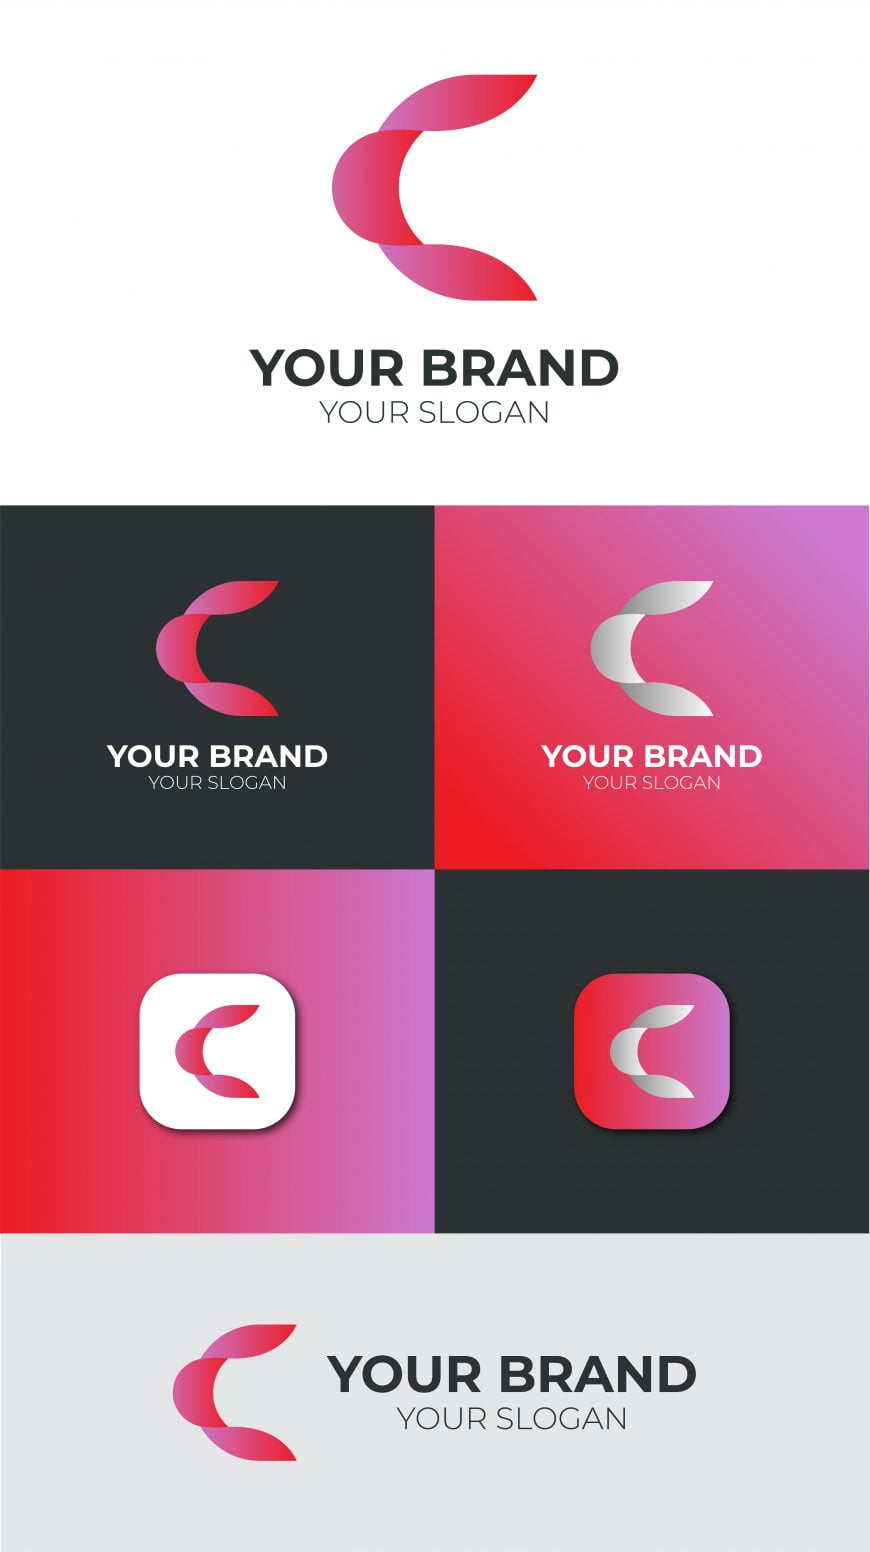 C LETTER LOGO FREE TEMPLATE